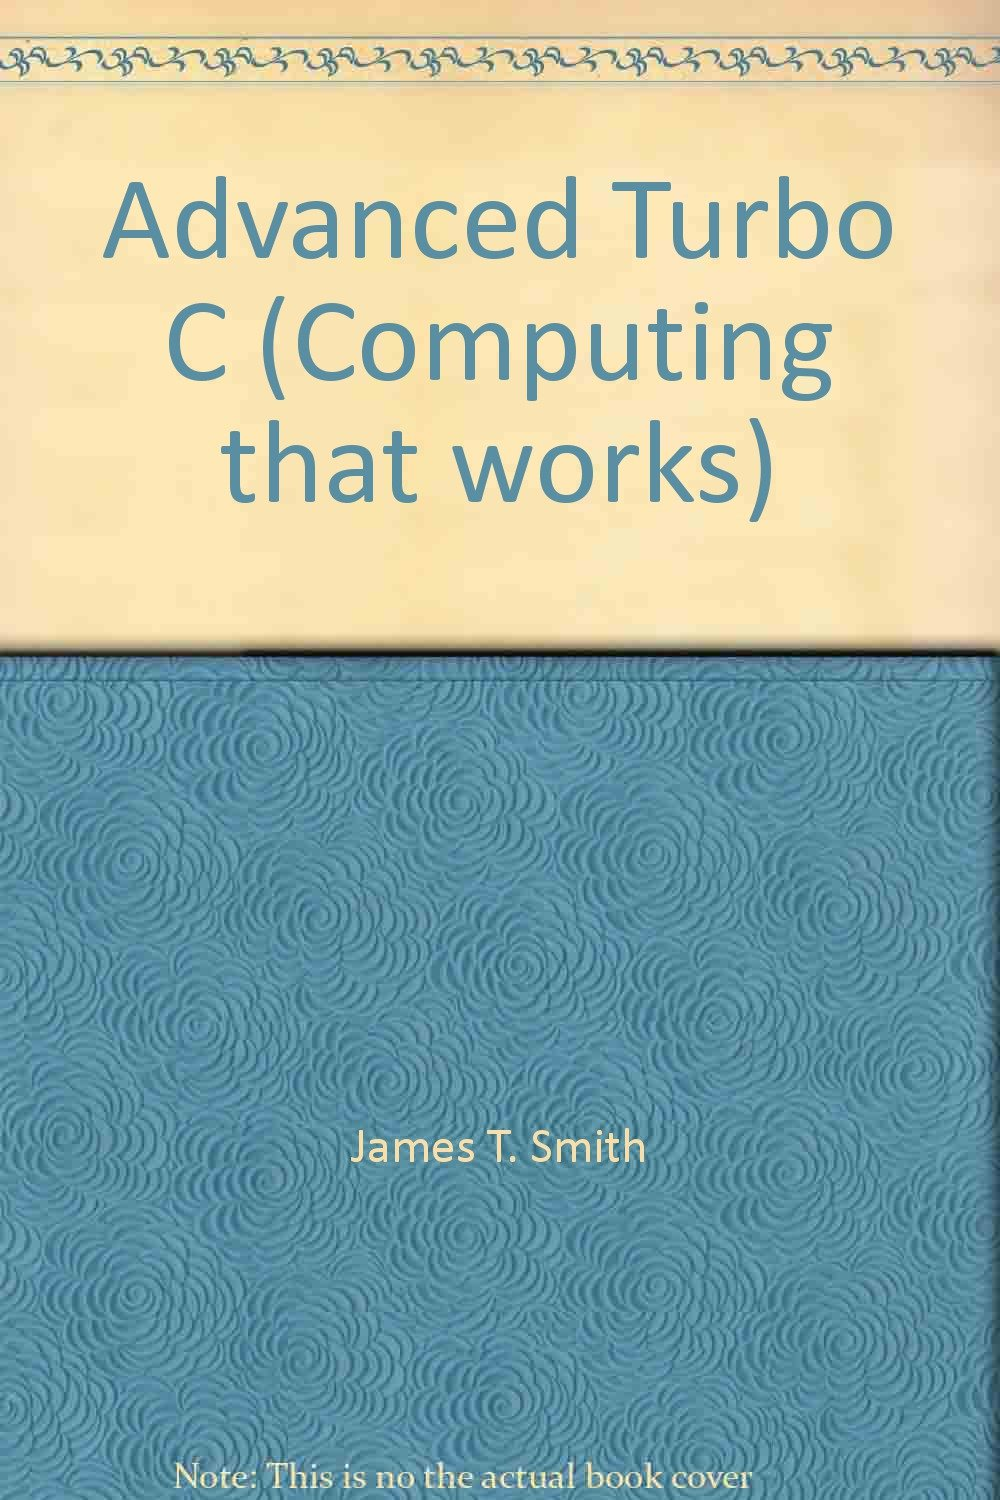 Advanced Programming and Applications in Turbo C. (Computing that works): James T. Smith: 9780070587083: Amazon.com: Books